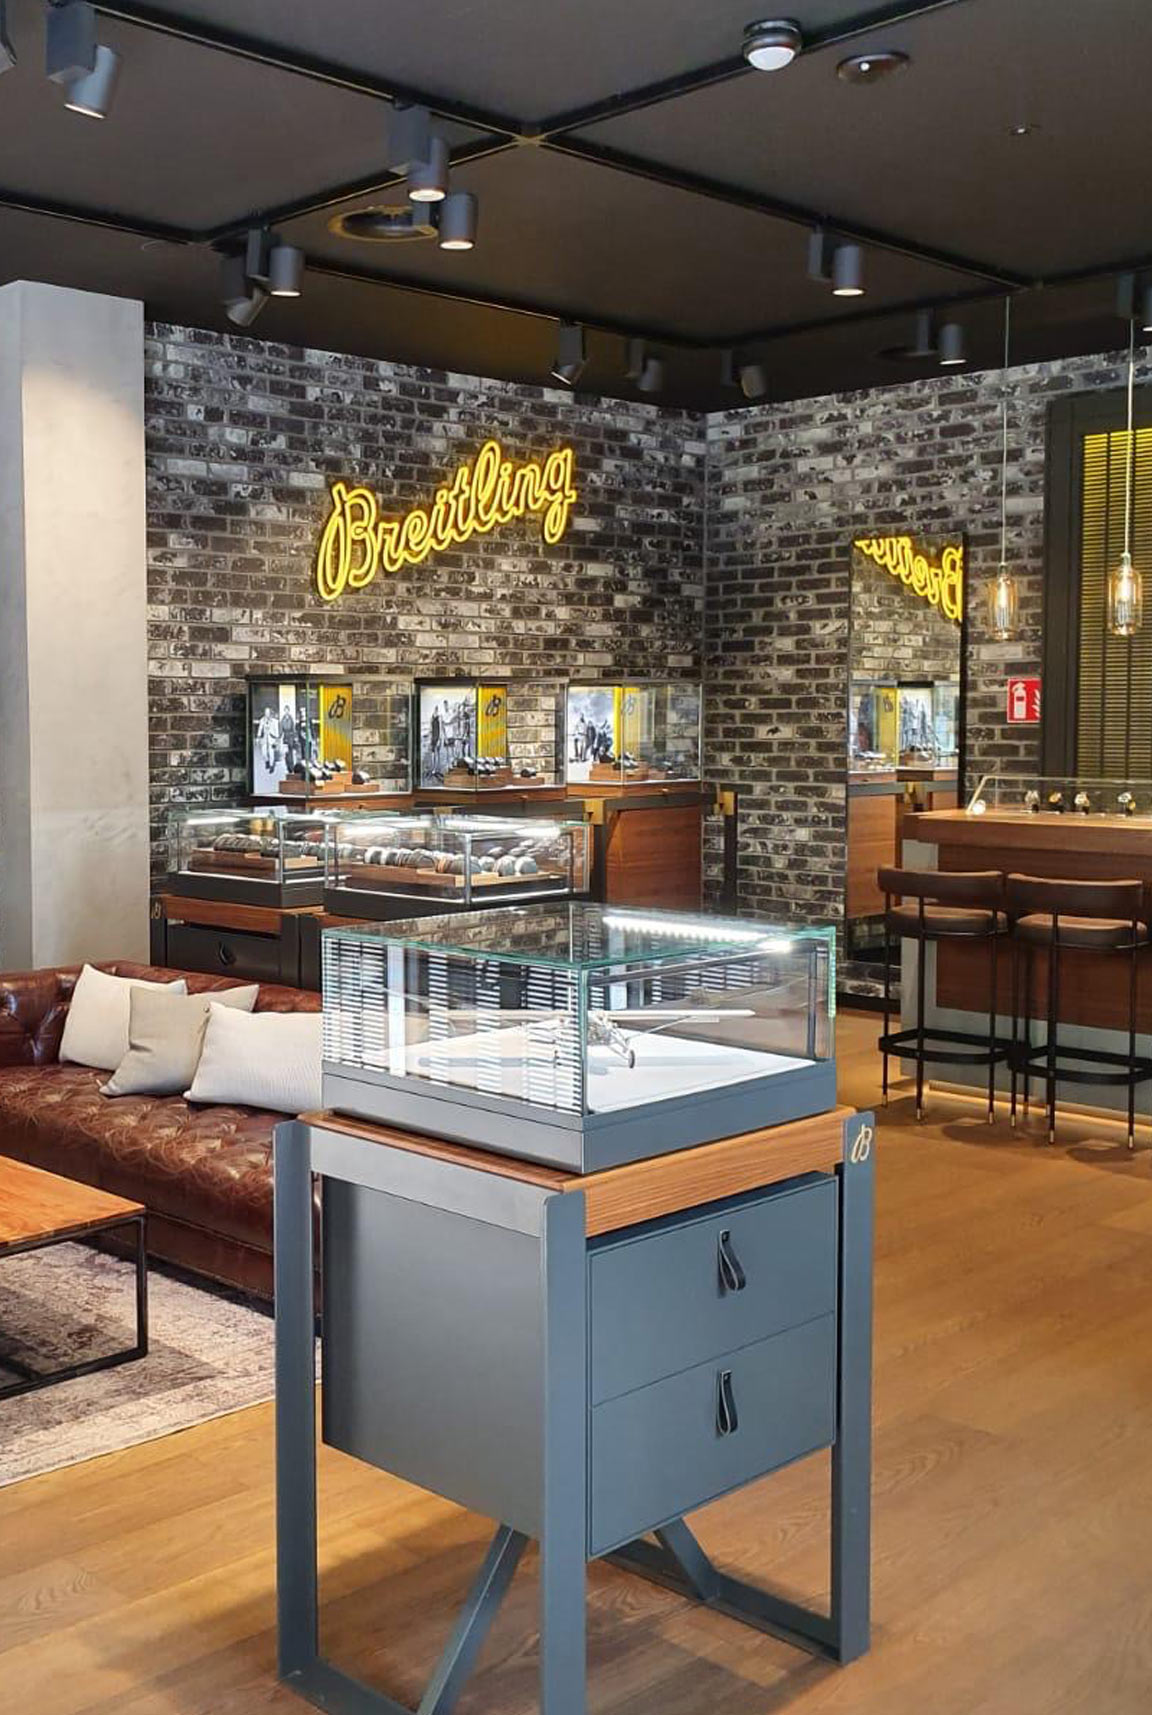 Breitling Outlet Roermond